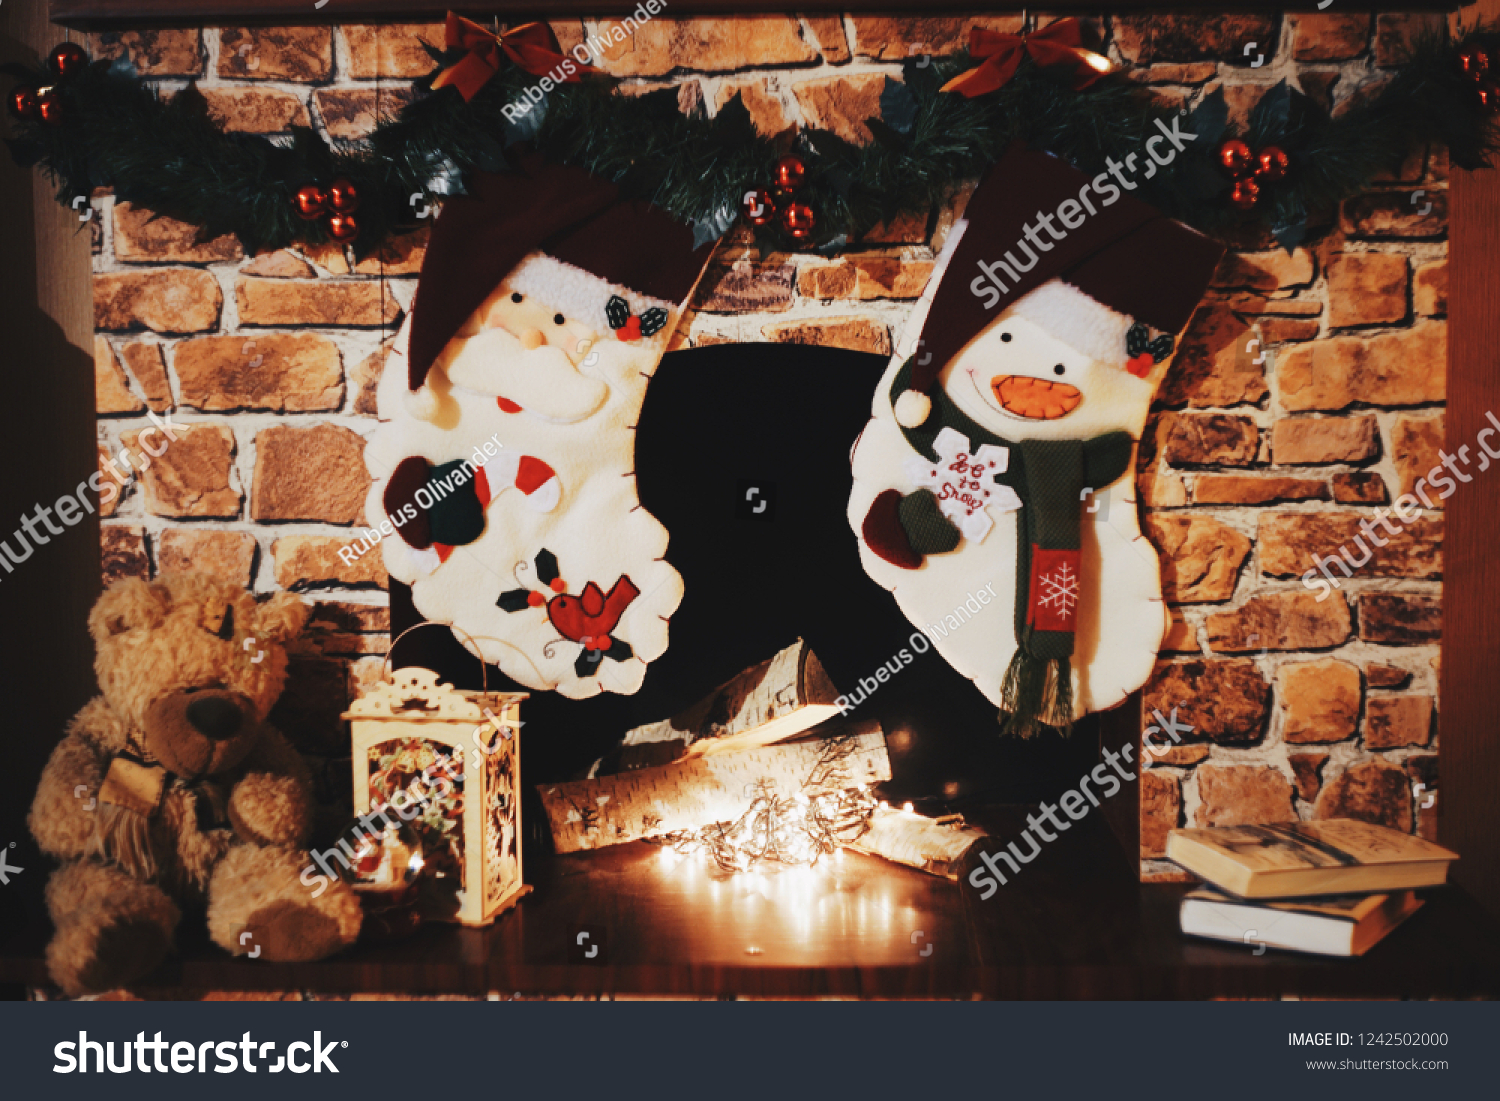 What Can I Use To Attach Christmas Lights To Brick christmas brick fireplace family hanging two   holidays